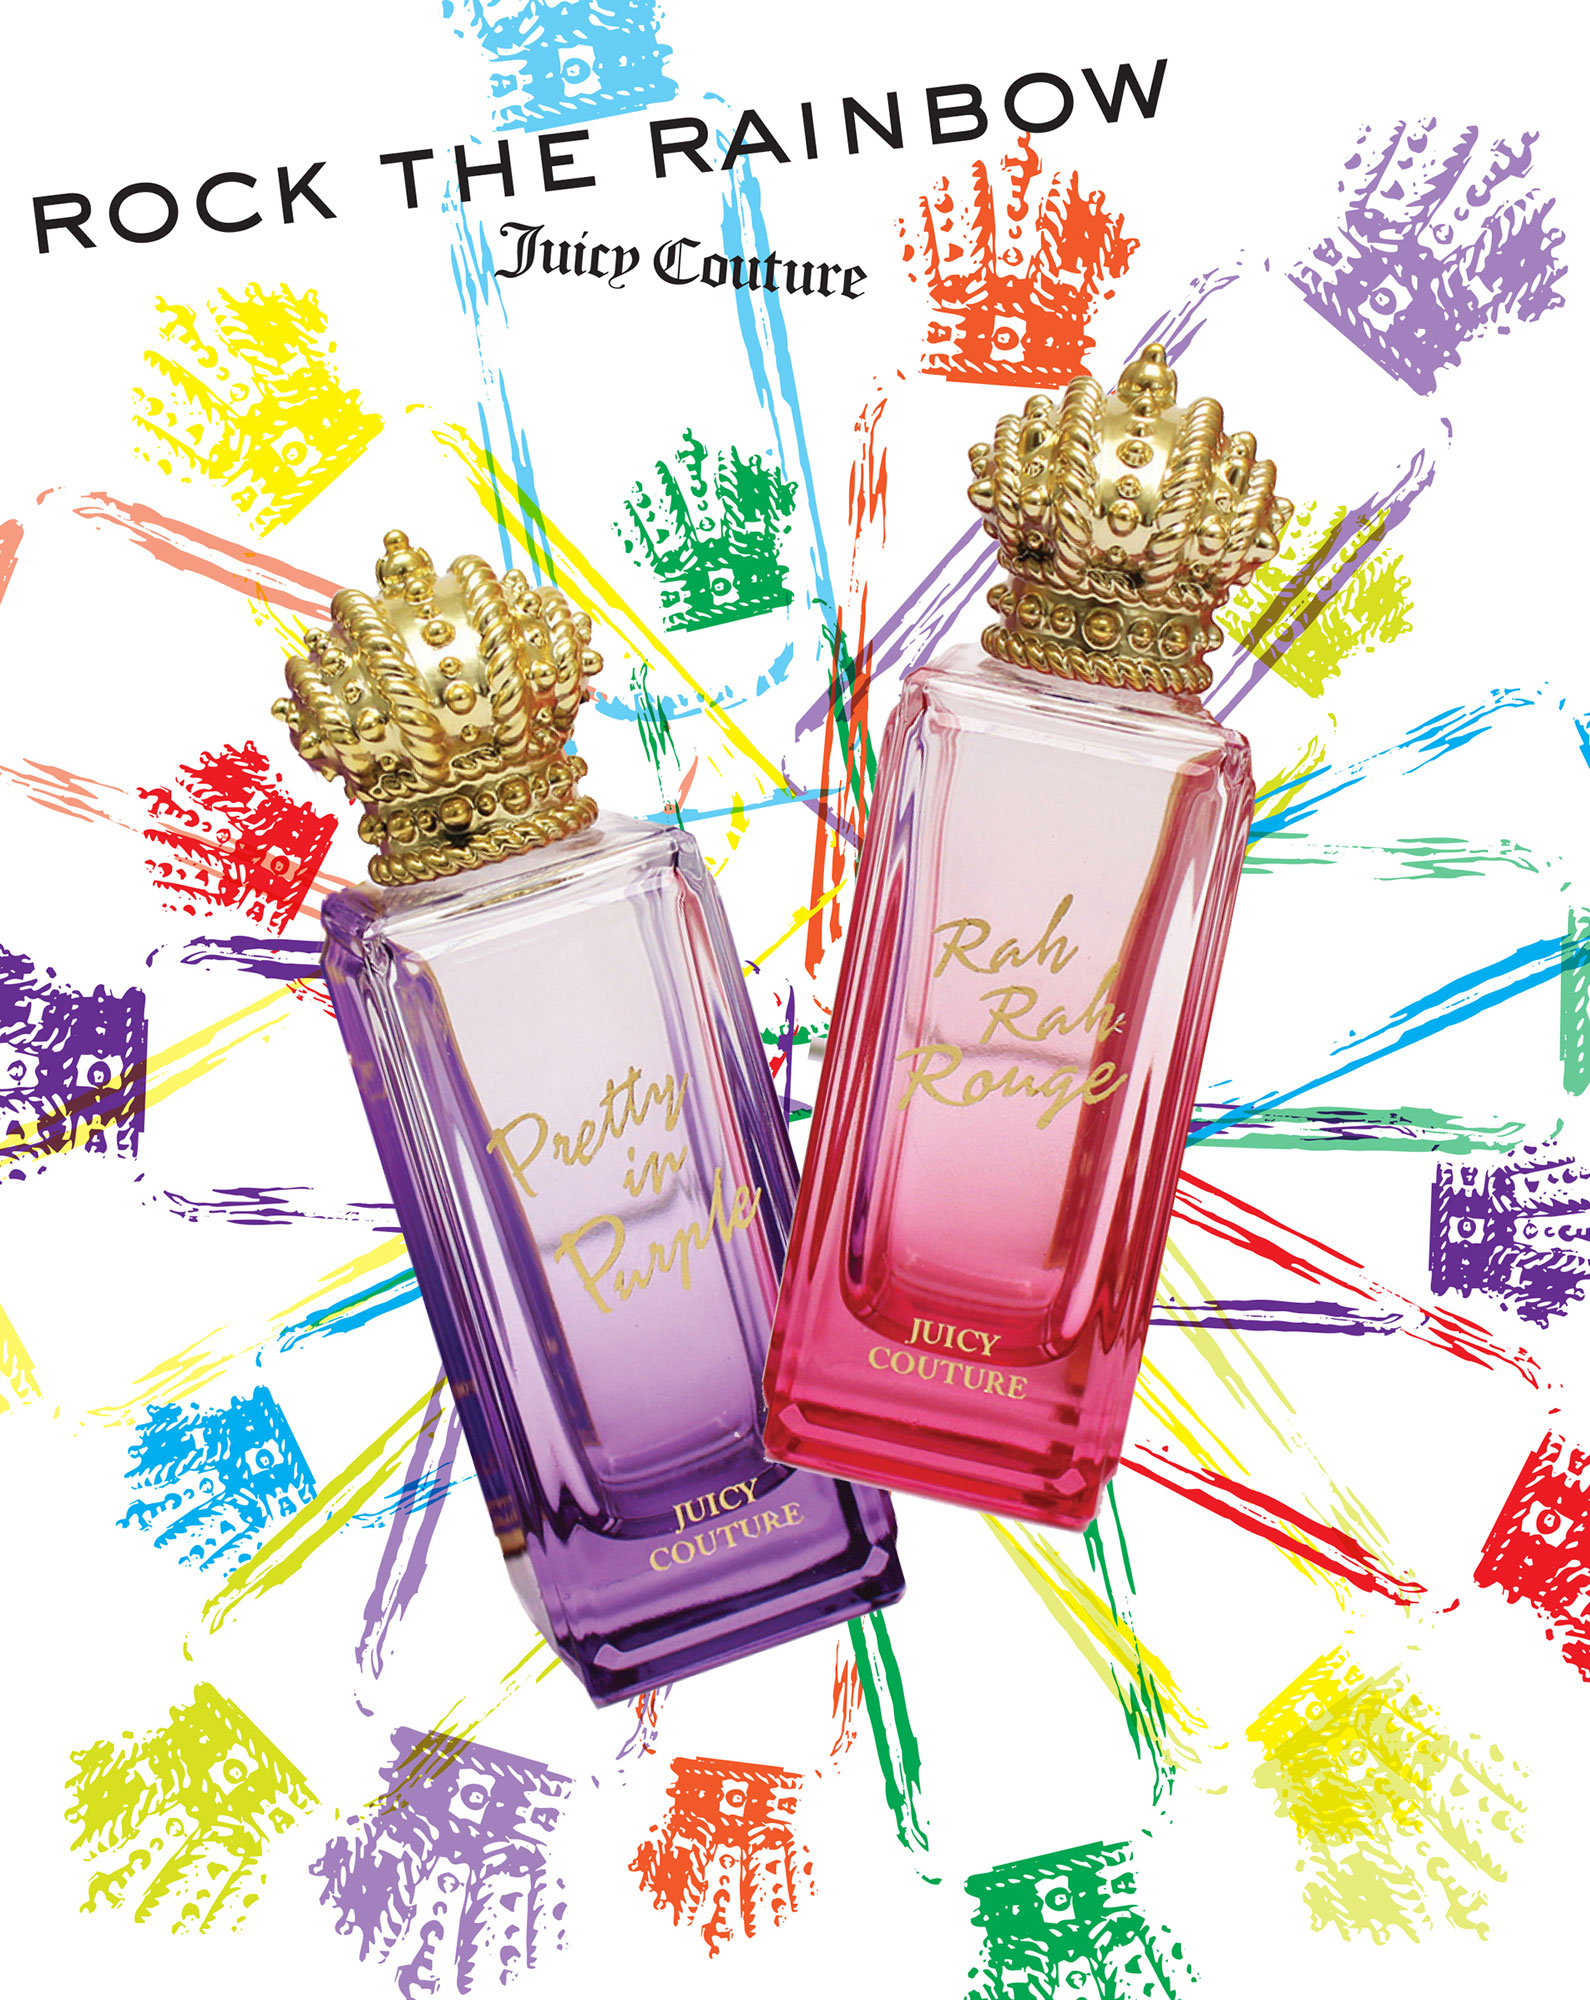 25a184eb412 Juicy Couture Rock The Rainbow ~ New Fragrances